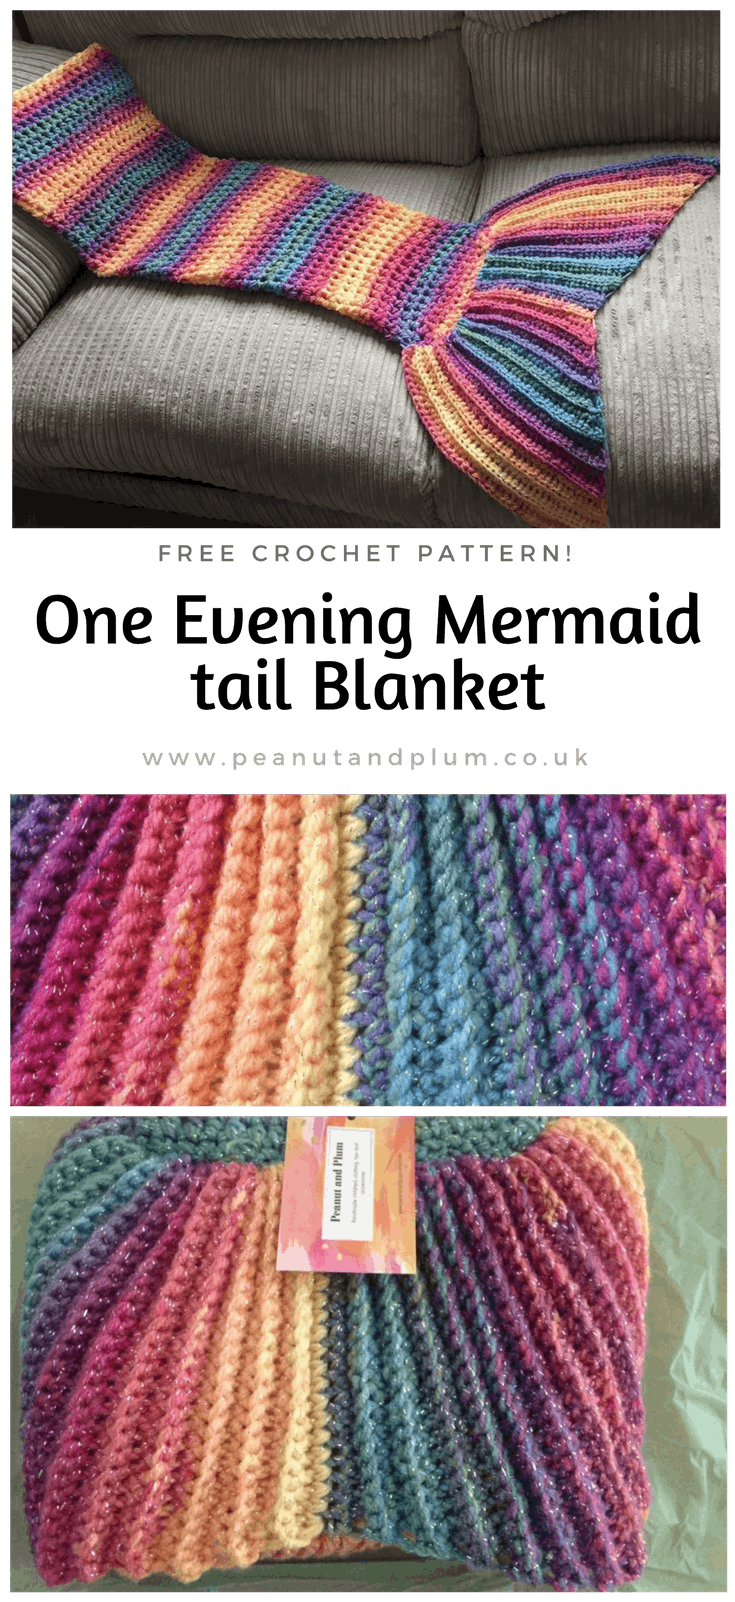 One Evening Crochet Mermaid Tail Blanket Pattern Peanut And Plum